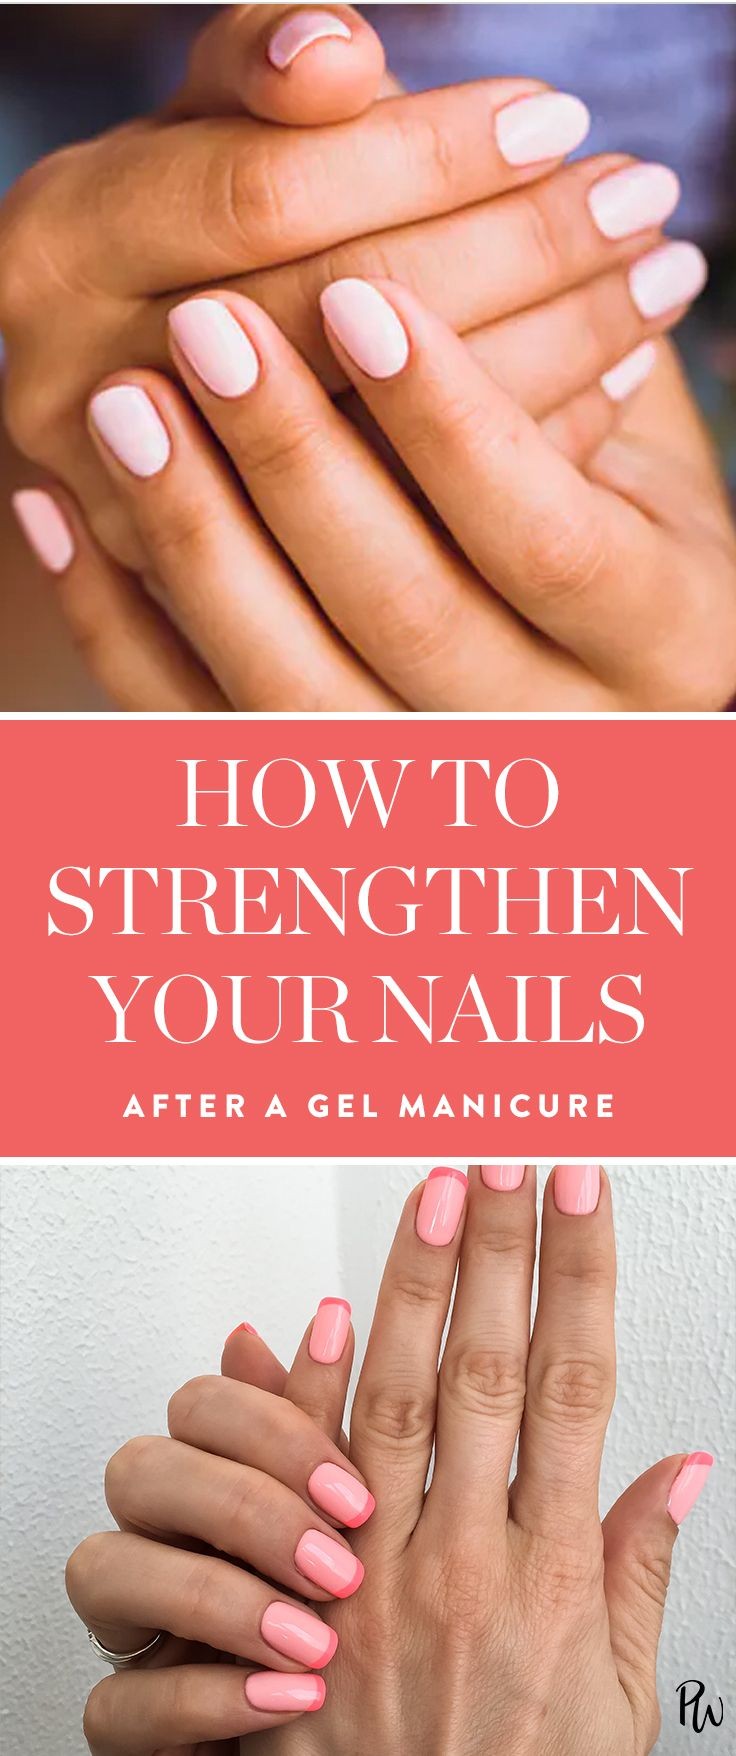 How to nails recover after gel manicure forecasting dress in on every day in 2019